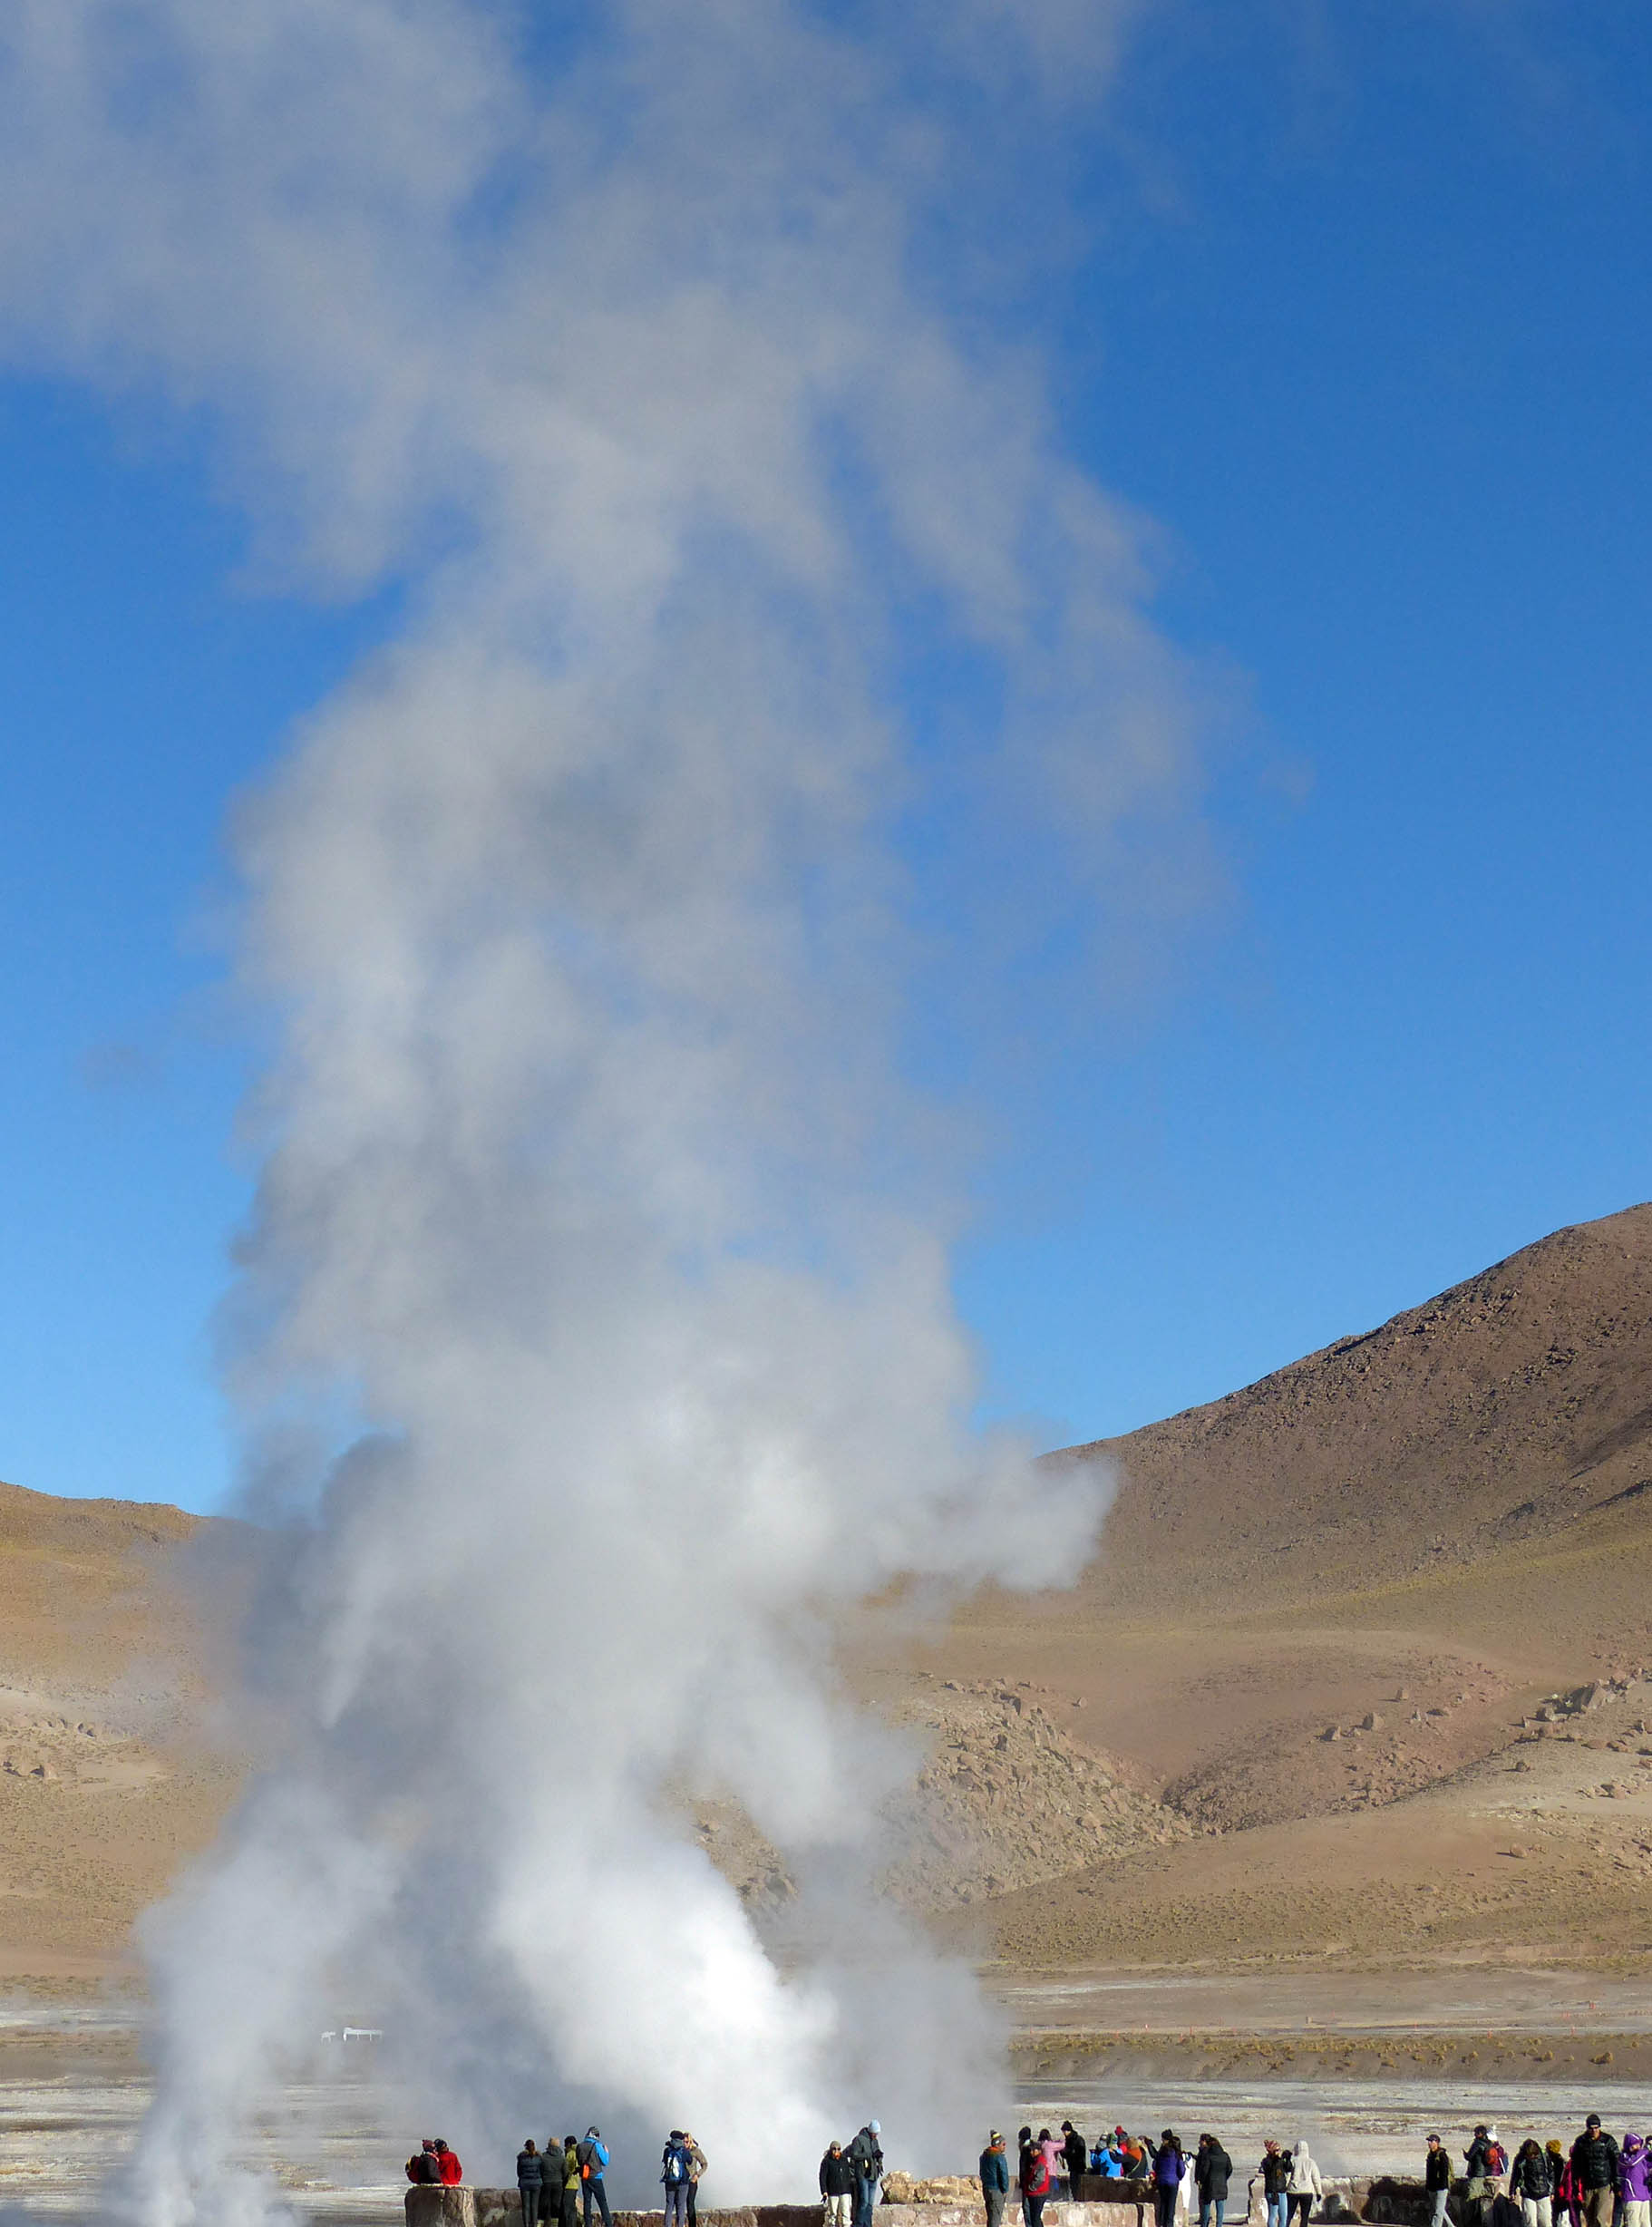 Steam rising from a geyser with people watching